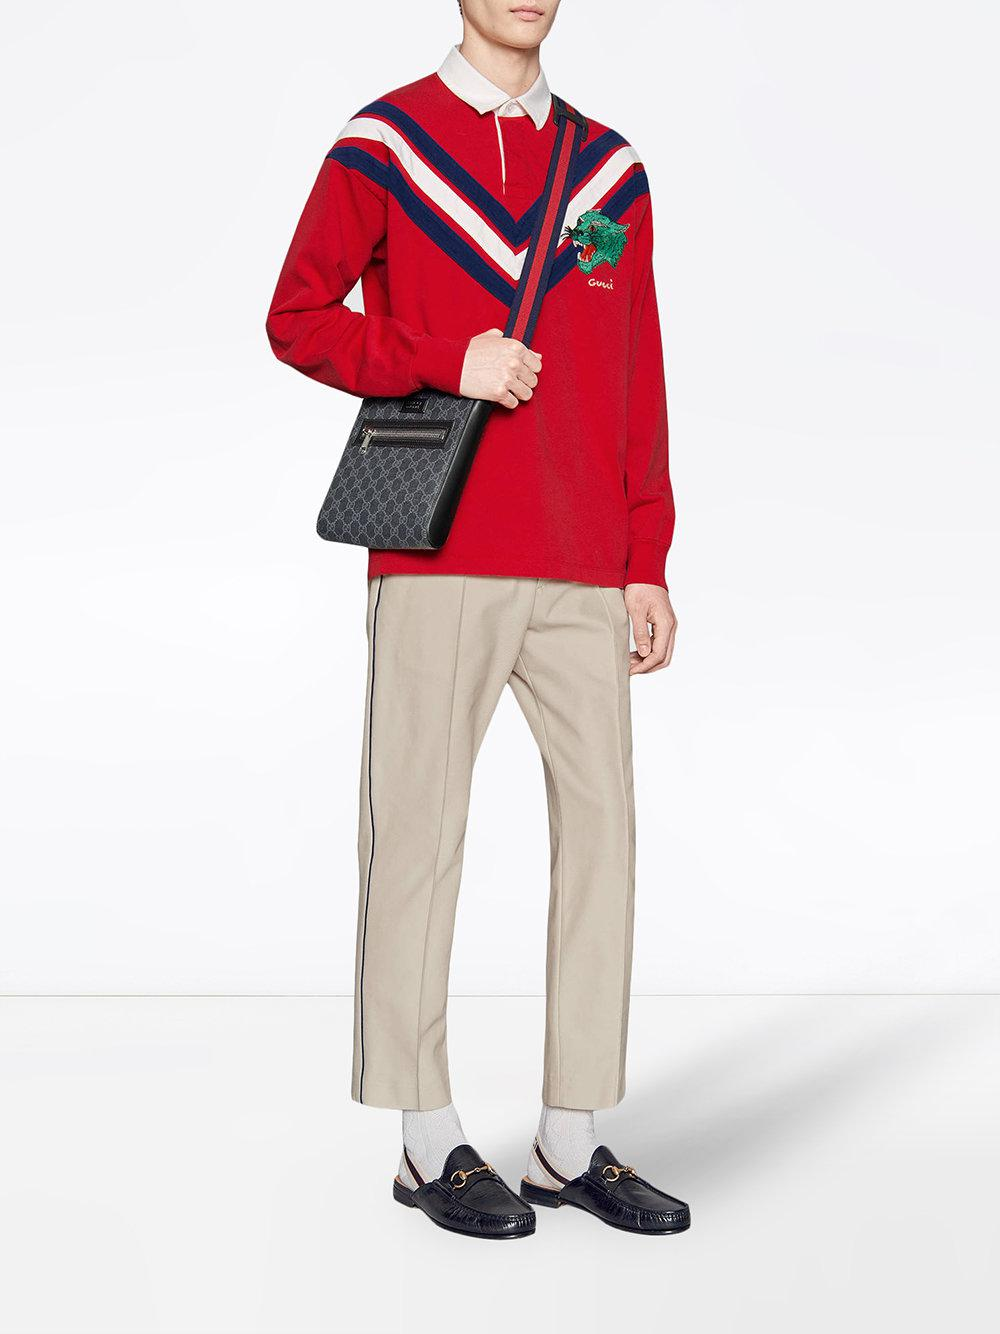 ad3e2083 Gucci - Red Chevron Polo With Panther Face for Men - Lyst. View fullscreen